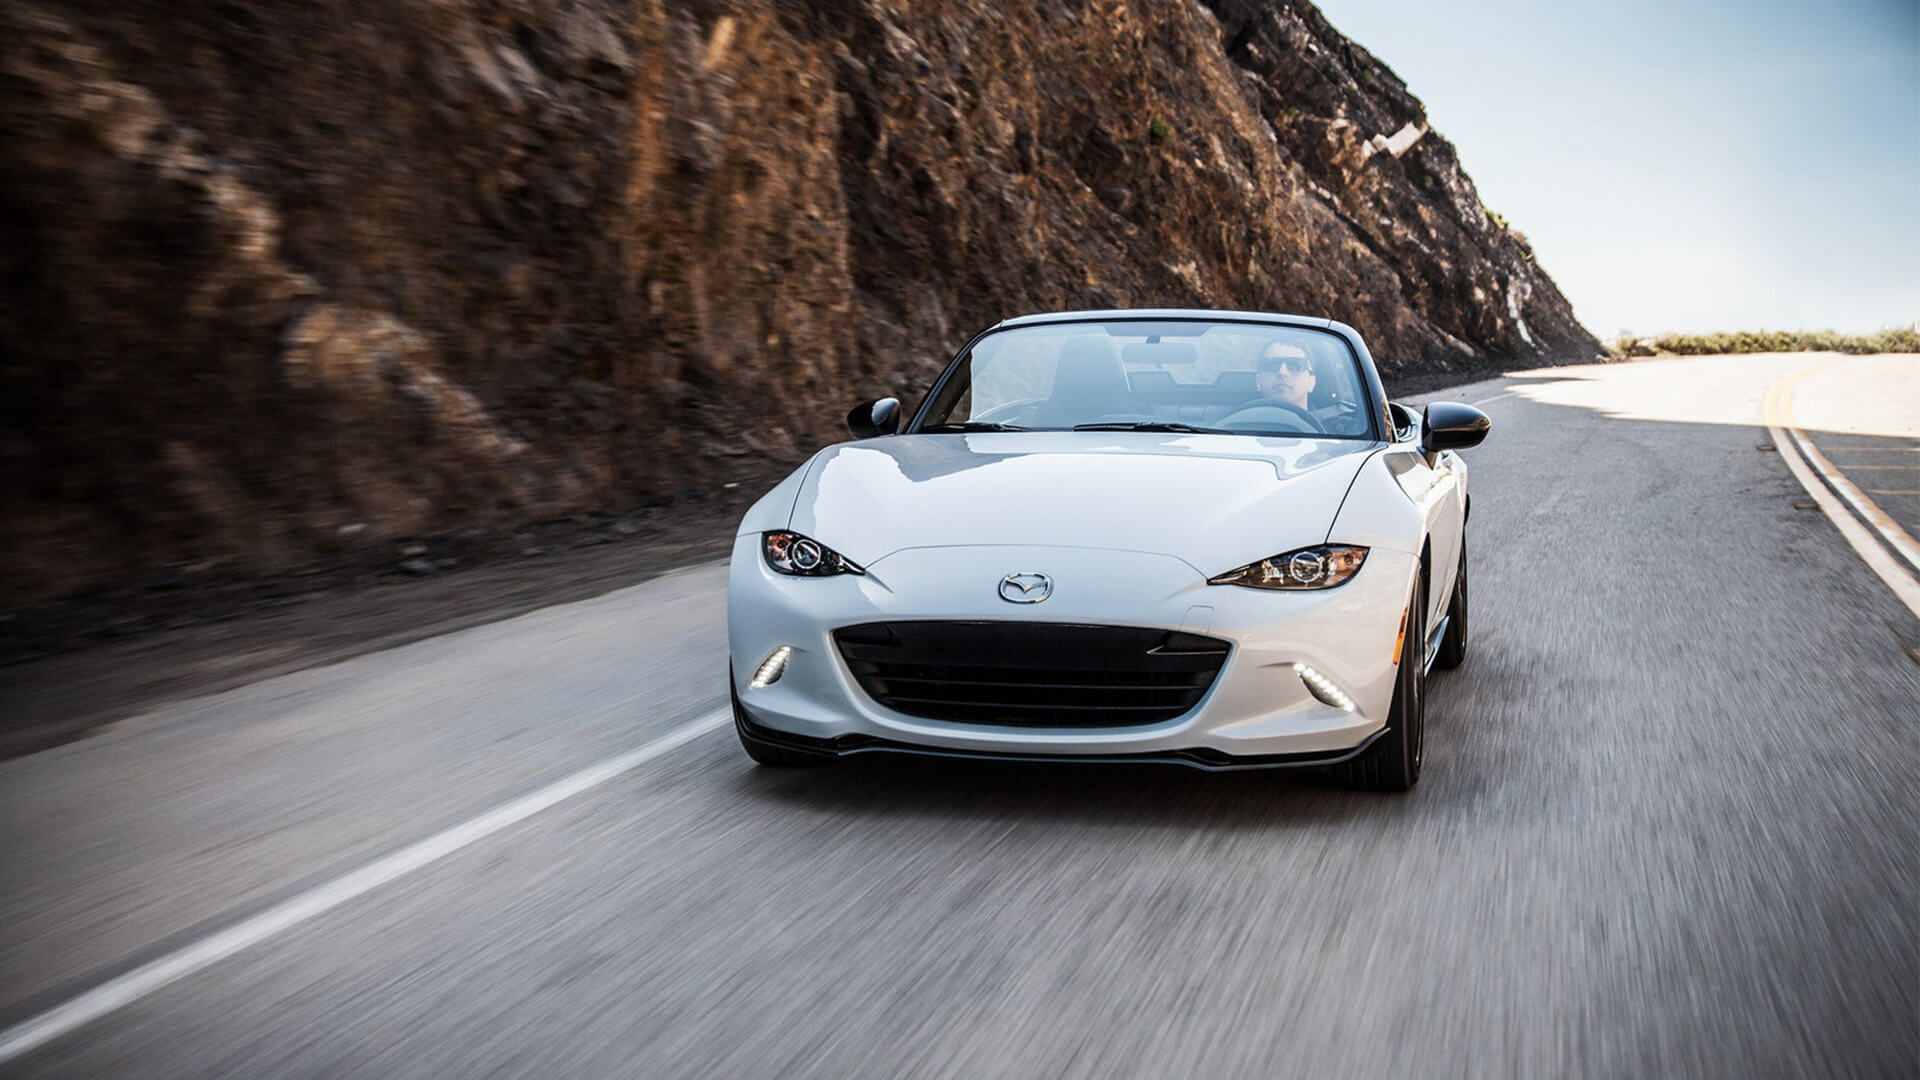 Mazda MX Miata Best Affordable Sports Cars In HD Images - Sport cars 2016 affordable